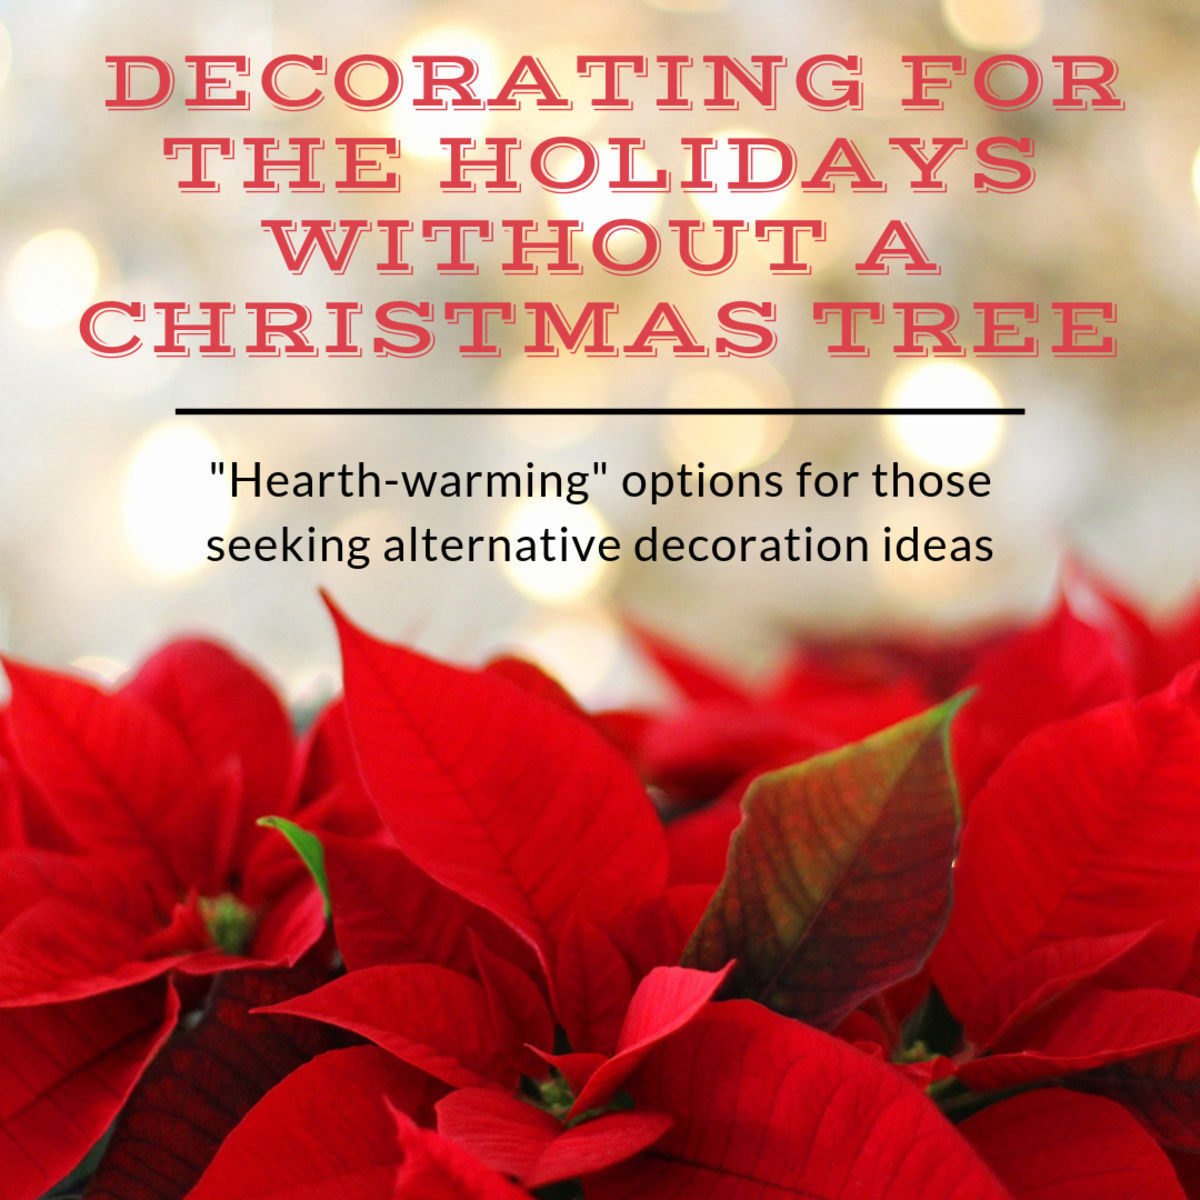 Decorating Without a Christmas Tree for the Holidays